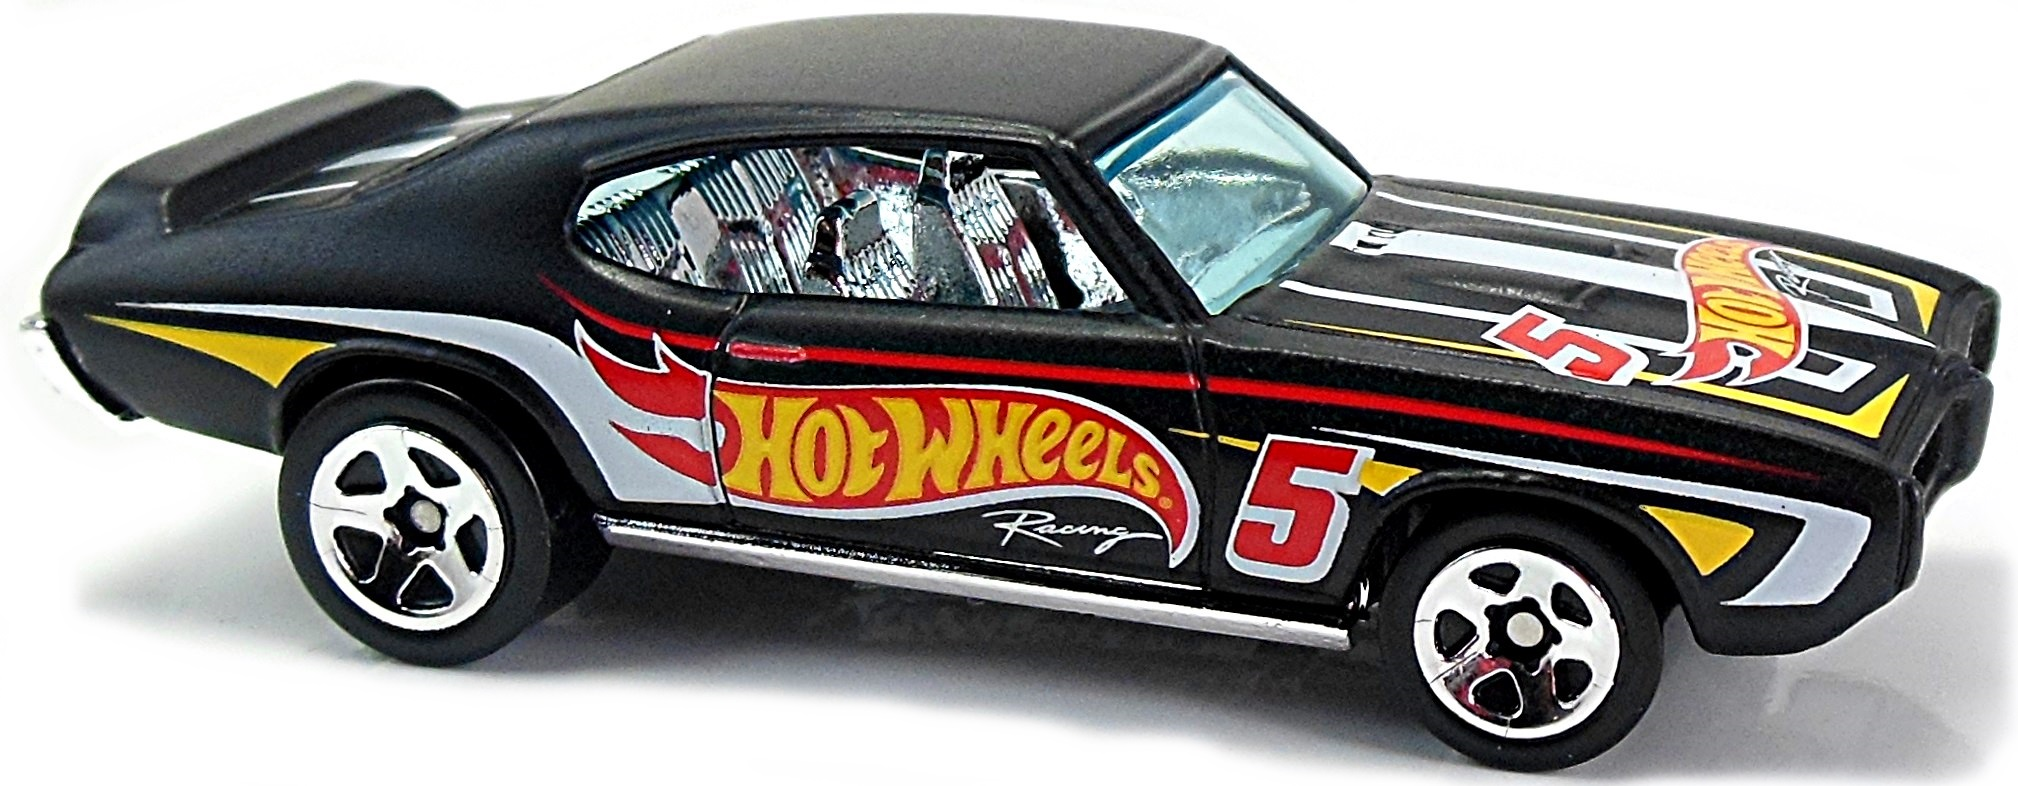 2017 American Muscle Racing Circuit Hot Wheels Newsletter